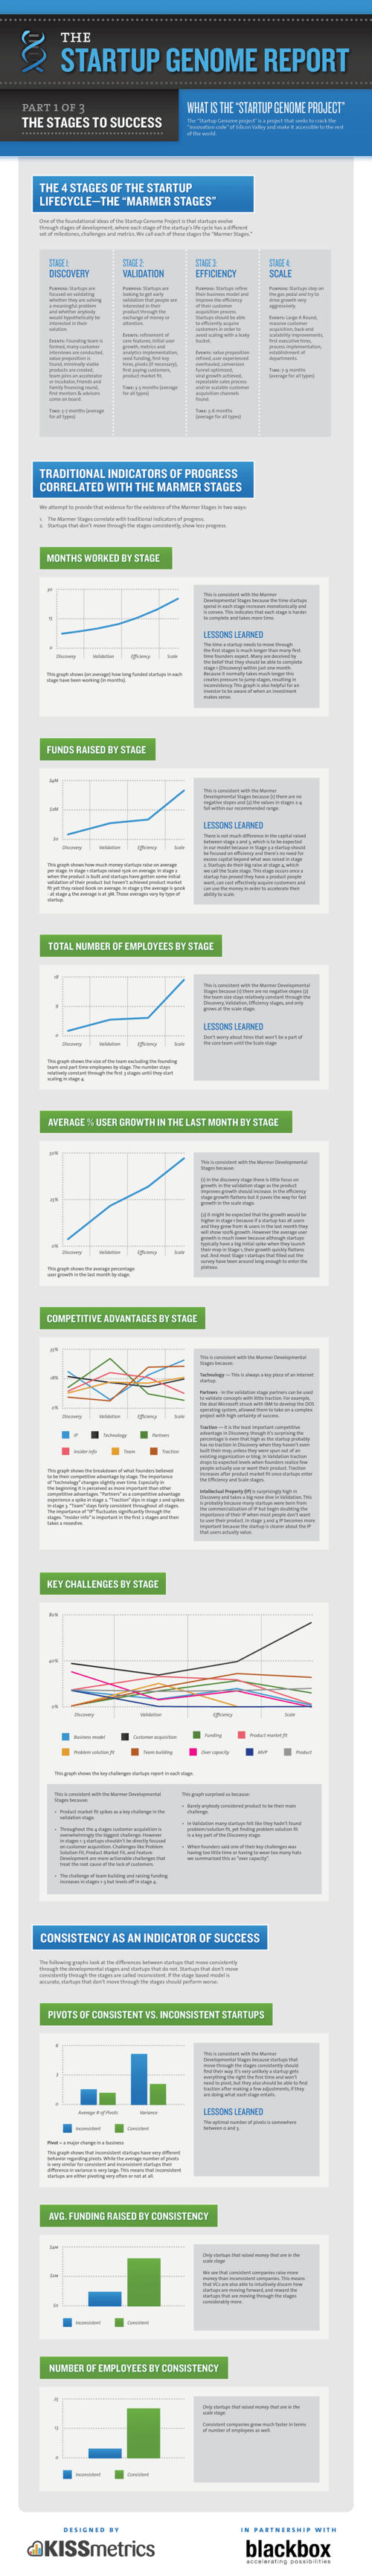 Infographic_by_kissmetrics_for_startup_genome_report